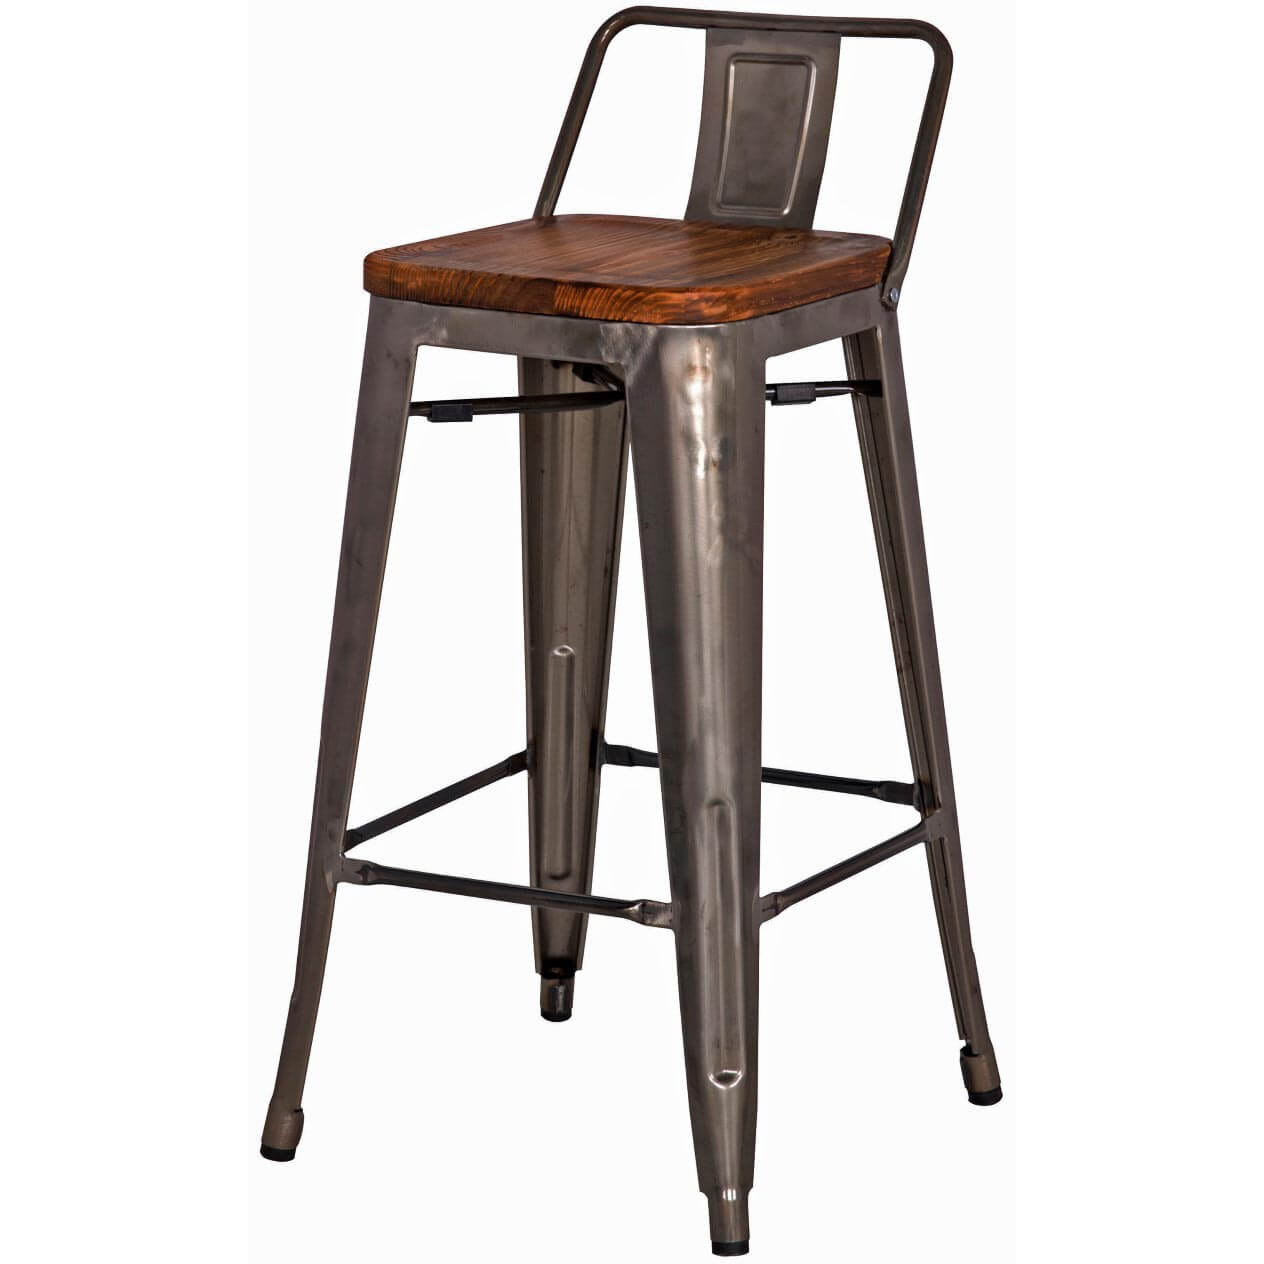 Metropolis Low Back Counter Stool Wood Seat Gunmetal Set of 4 Buy Online at Best Price - SohoMod  sc 1 st  SohoMod : metal stool with wood seat - islam-shia.org